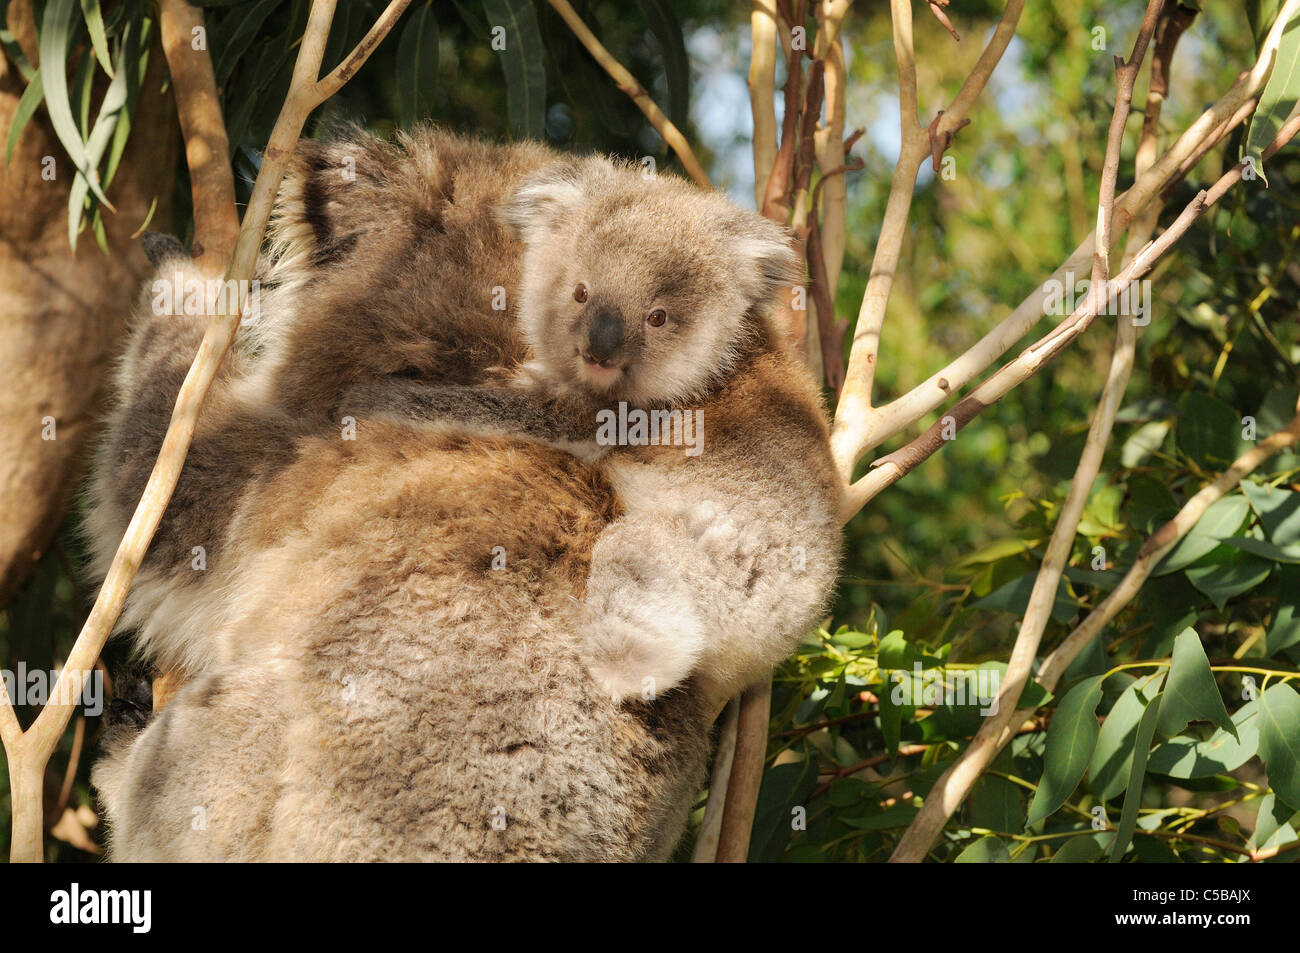 Koala Phascolarctos cinereus Young on mothers back Photographed in Victoria, Australia - Stock Image